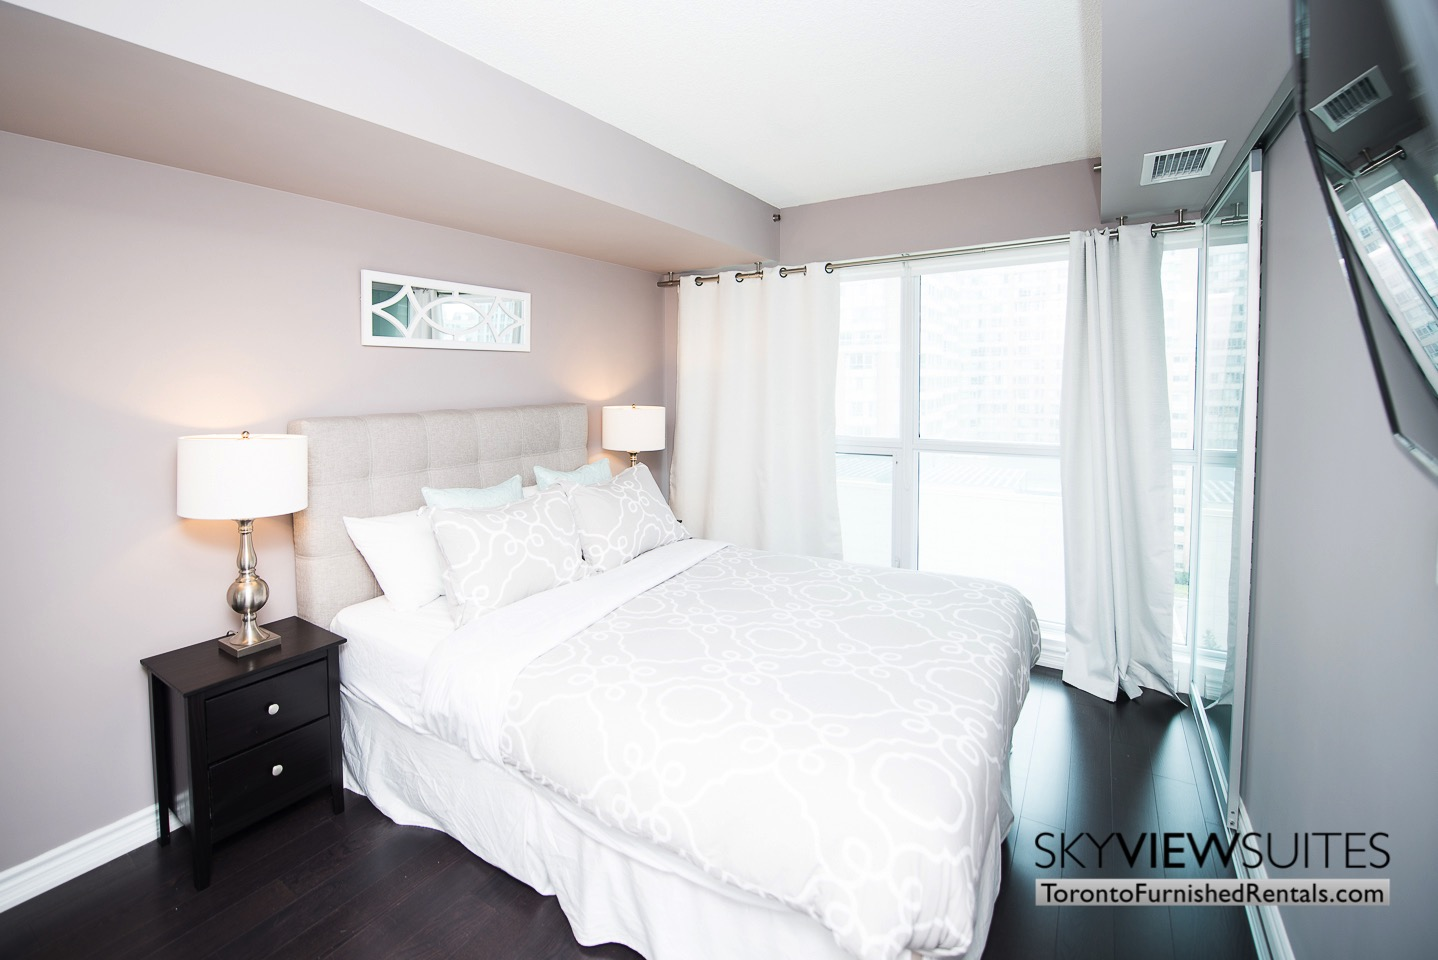 furnished-rentals-toronto-bedroom-college